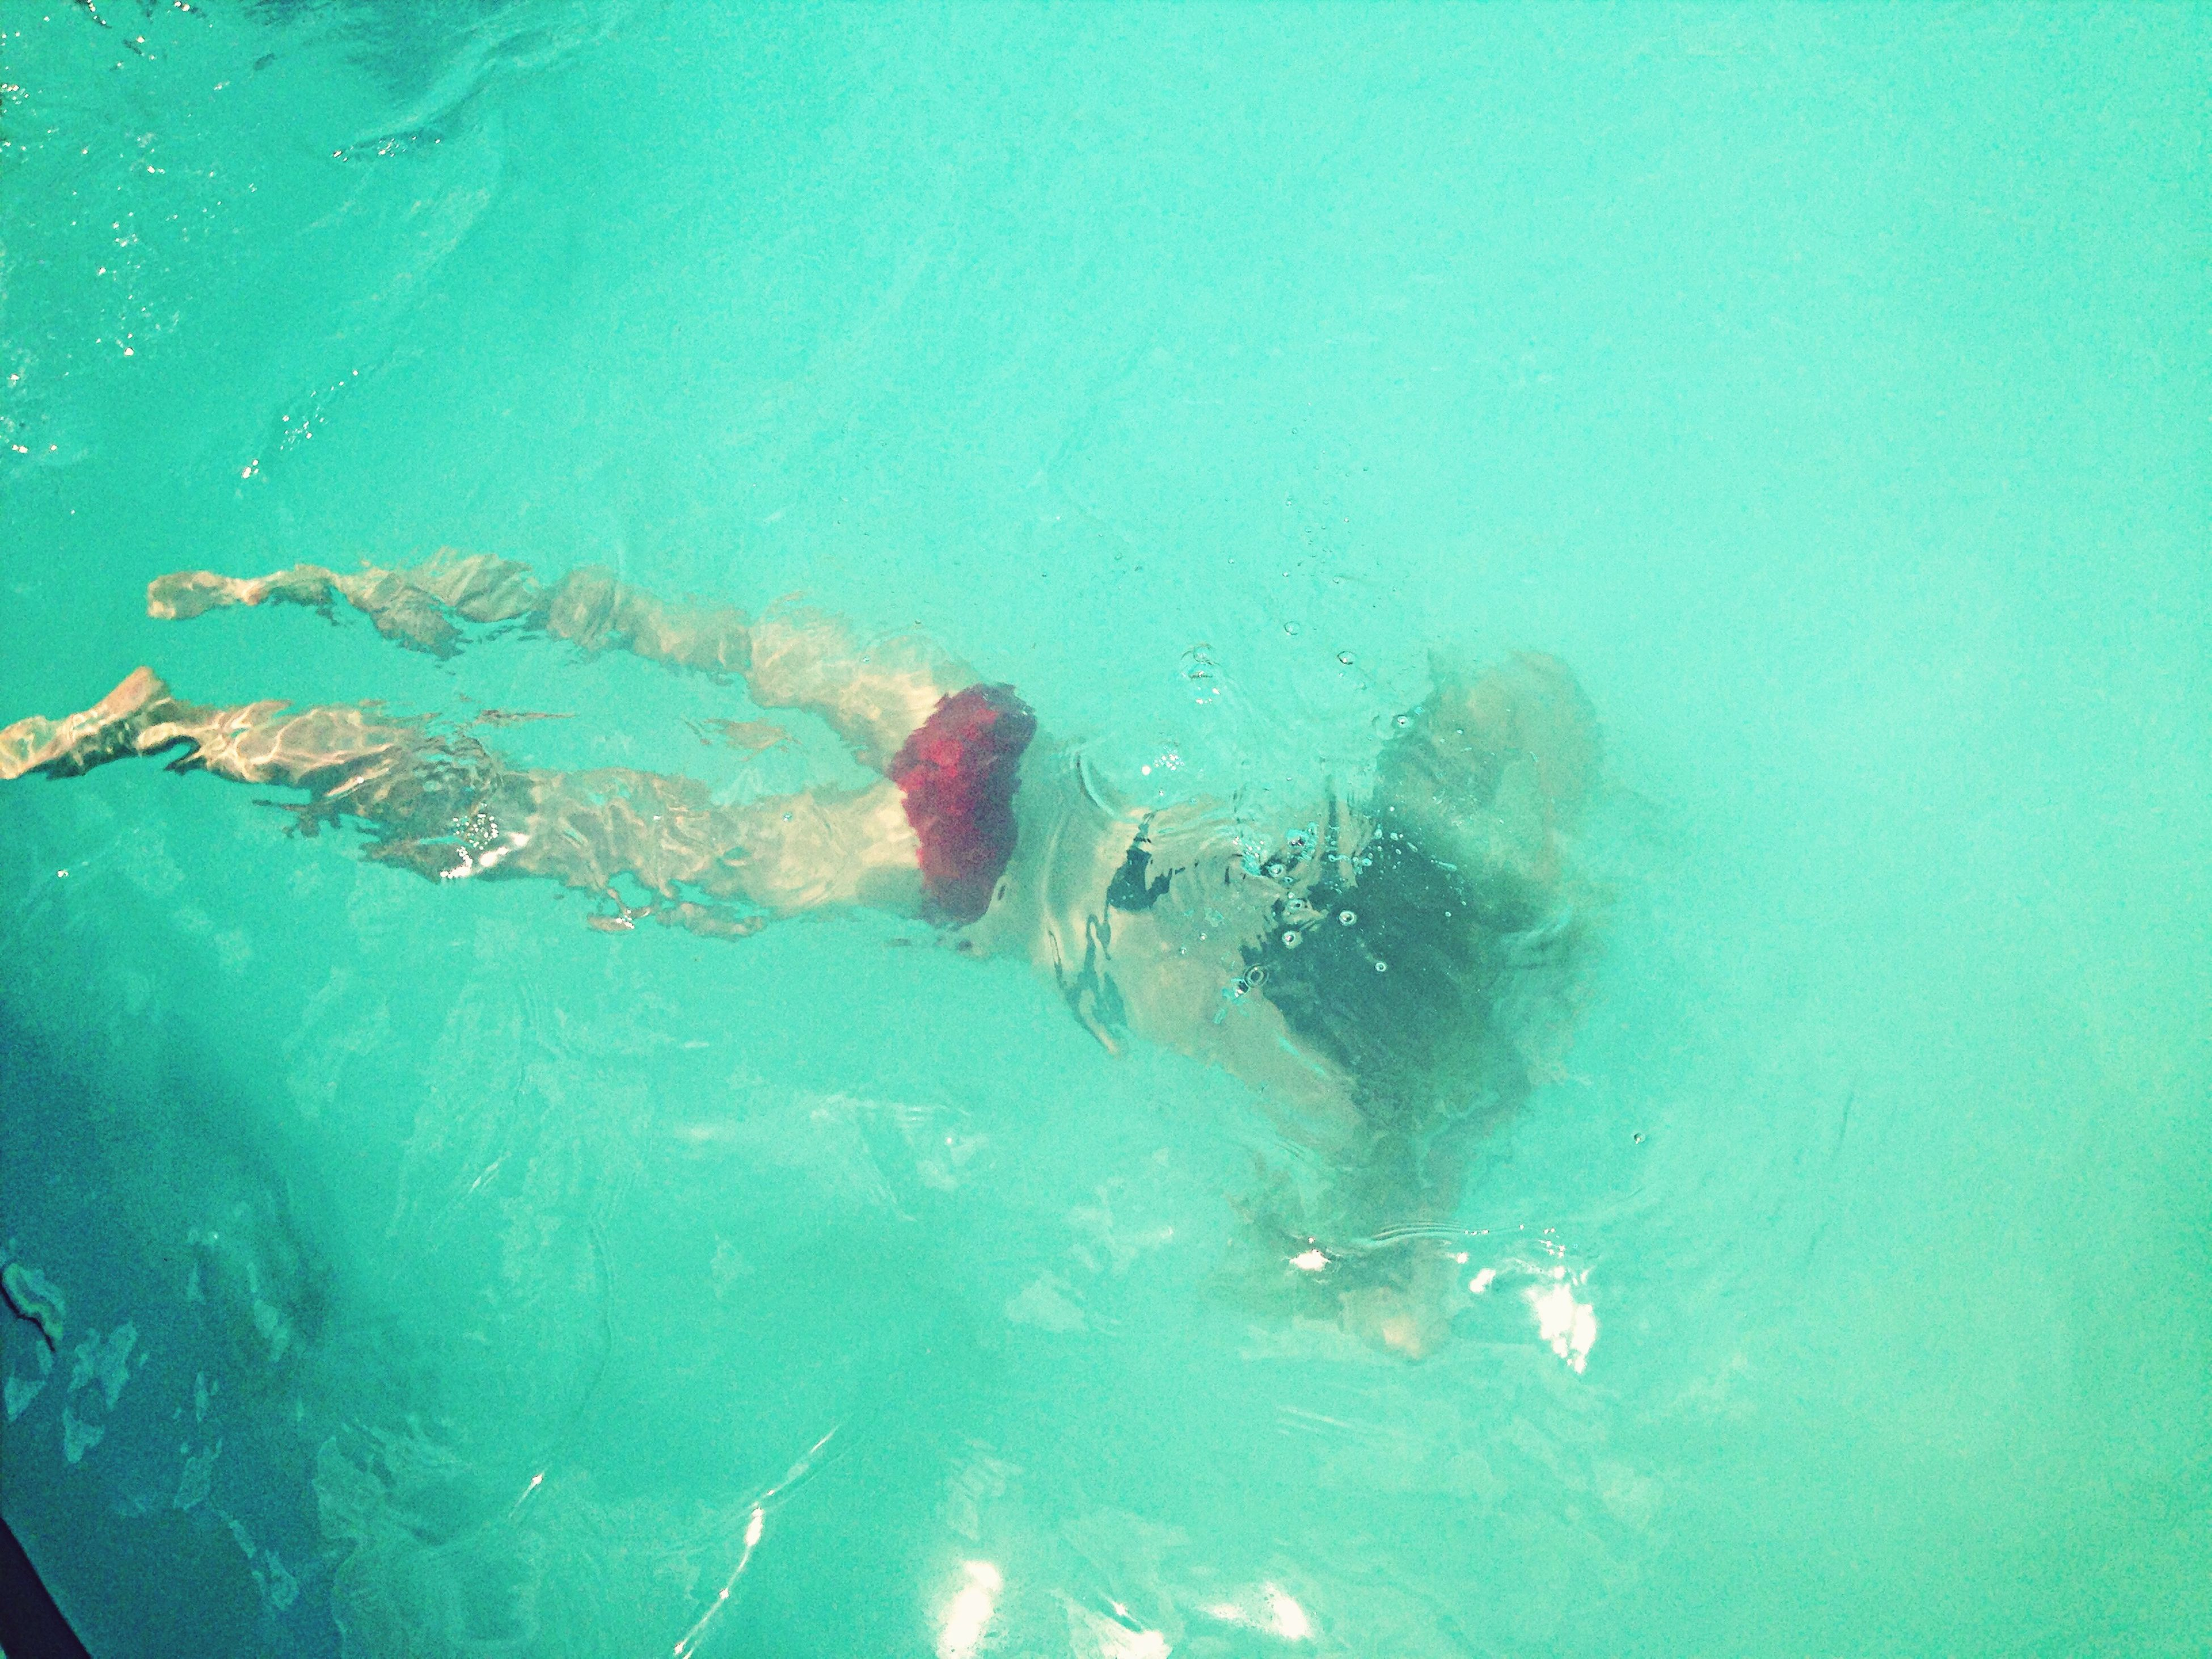 water, blue, underwater, swimming, swimming pool, turquoise colored, transparent, lifestyles, high angle view, sea, leisure activity, nature, day, undersea, men, wet, bubble, outdoors